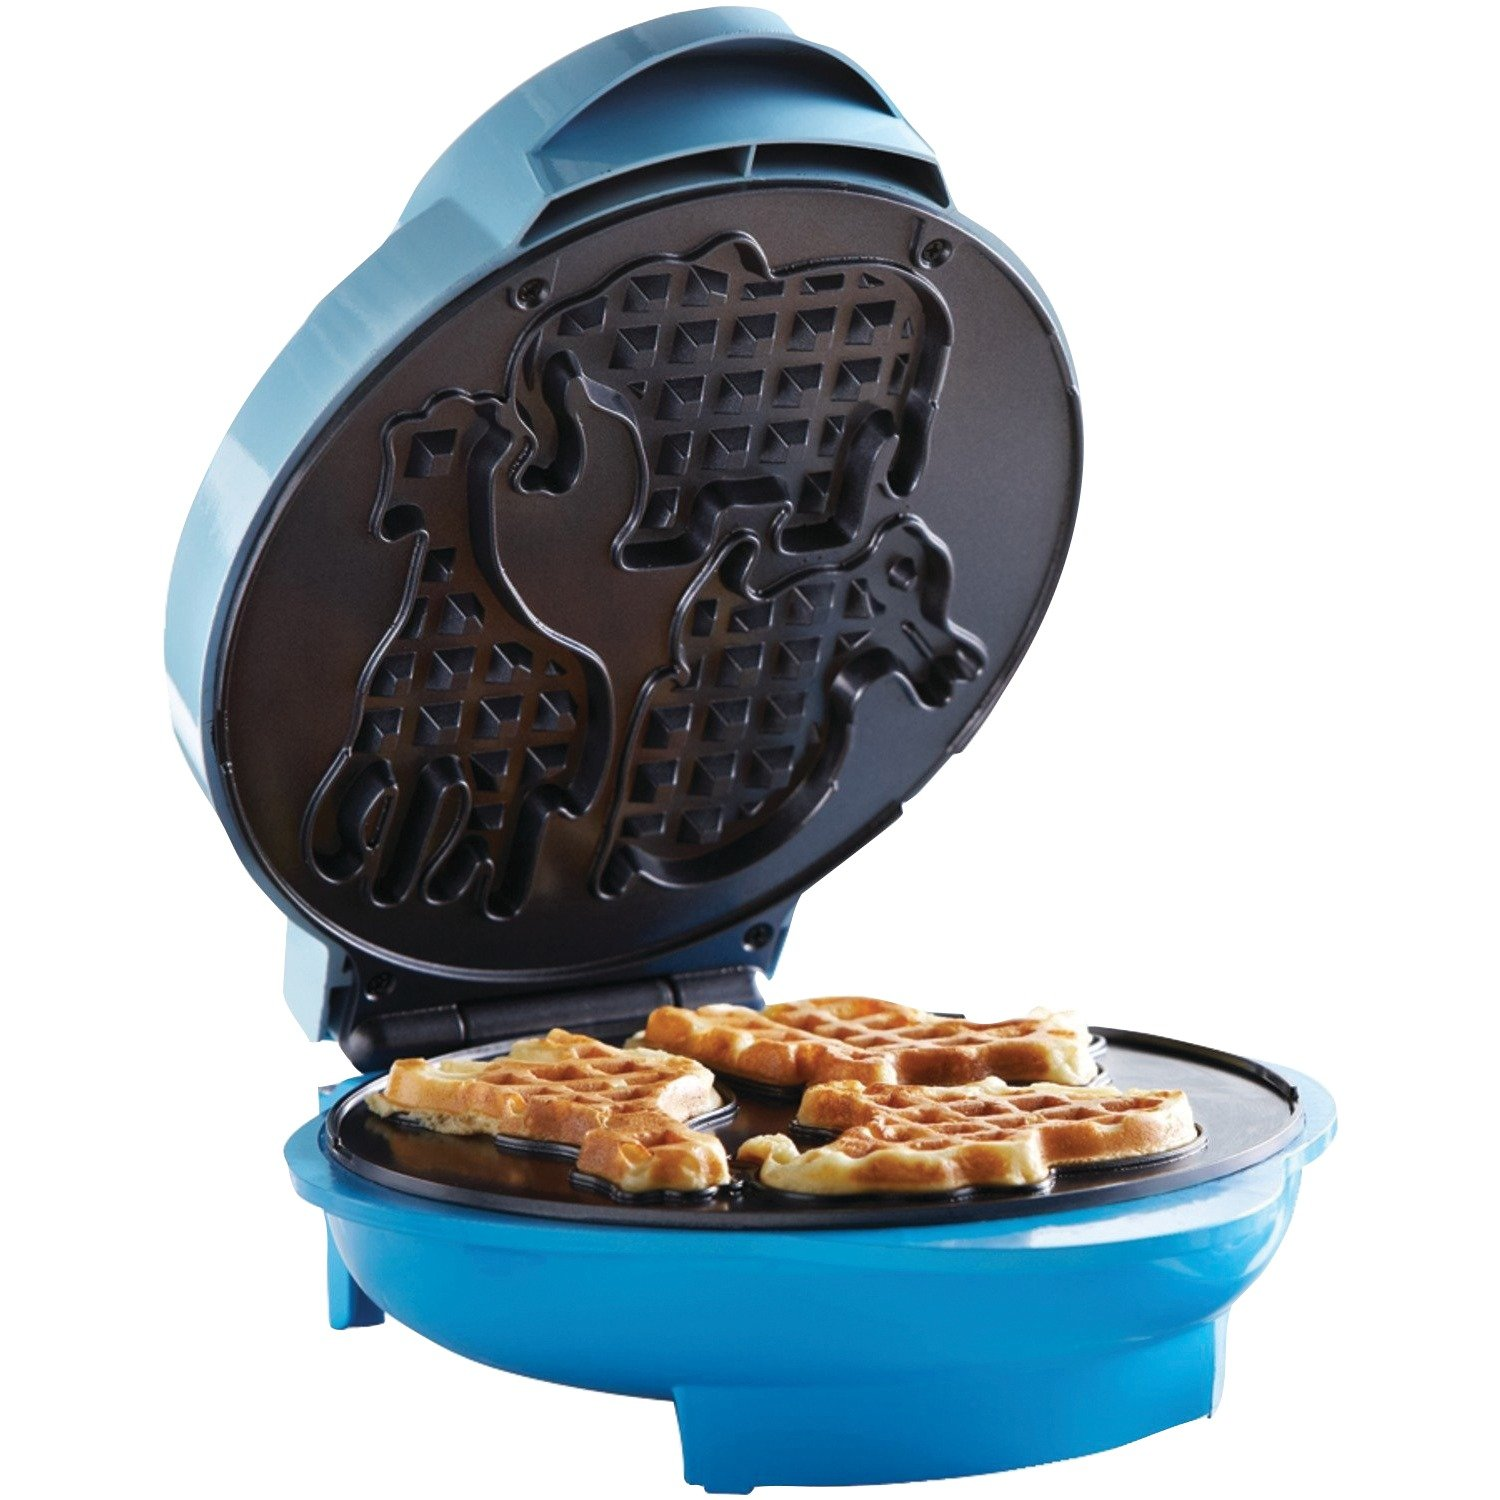 Brentwood TS-253 Appliances Electric Food Maker-Animal-Shapes Waffle Maker, Blue by Brentwood (Image #2)